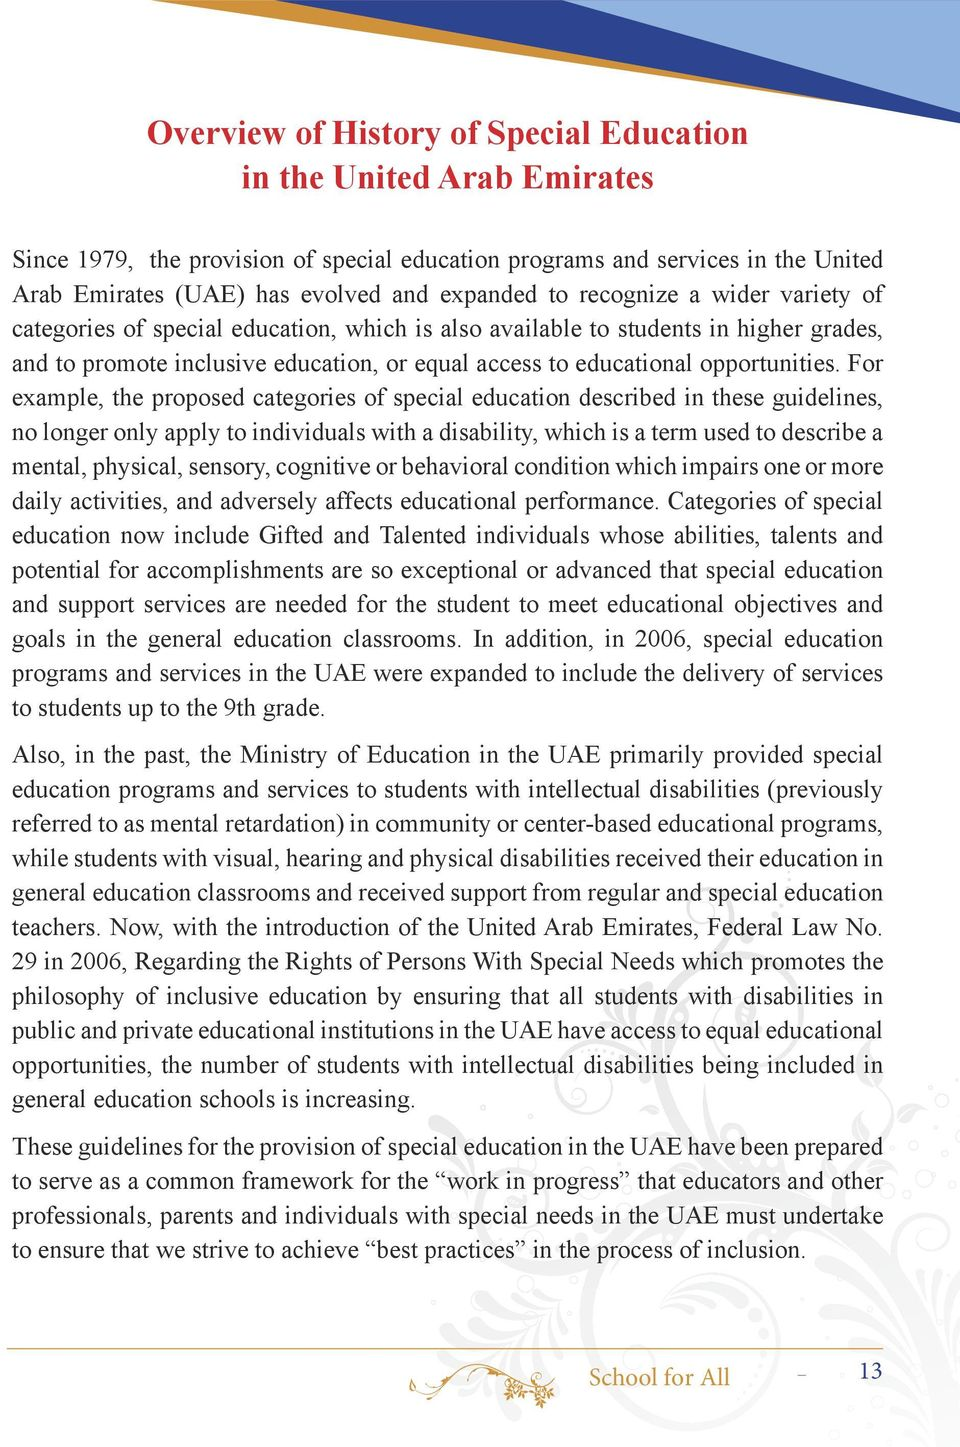 For example, the proposed categories of special education described in these guidelines, no longer only apply to individuals with a disability, which is a term used to describe a mental, physical,